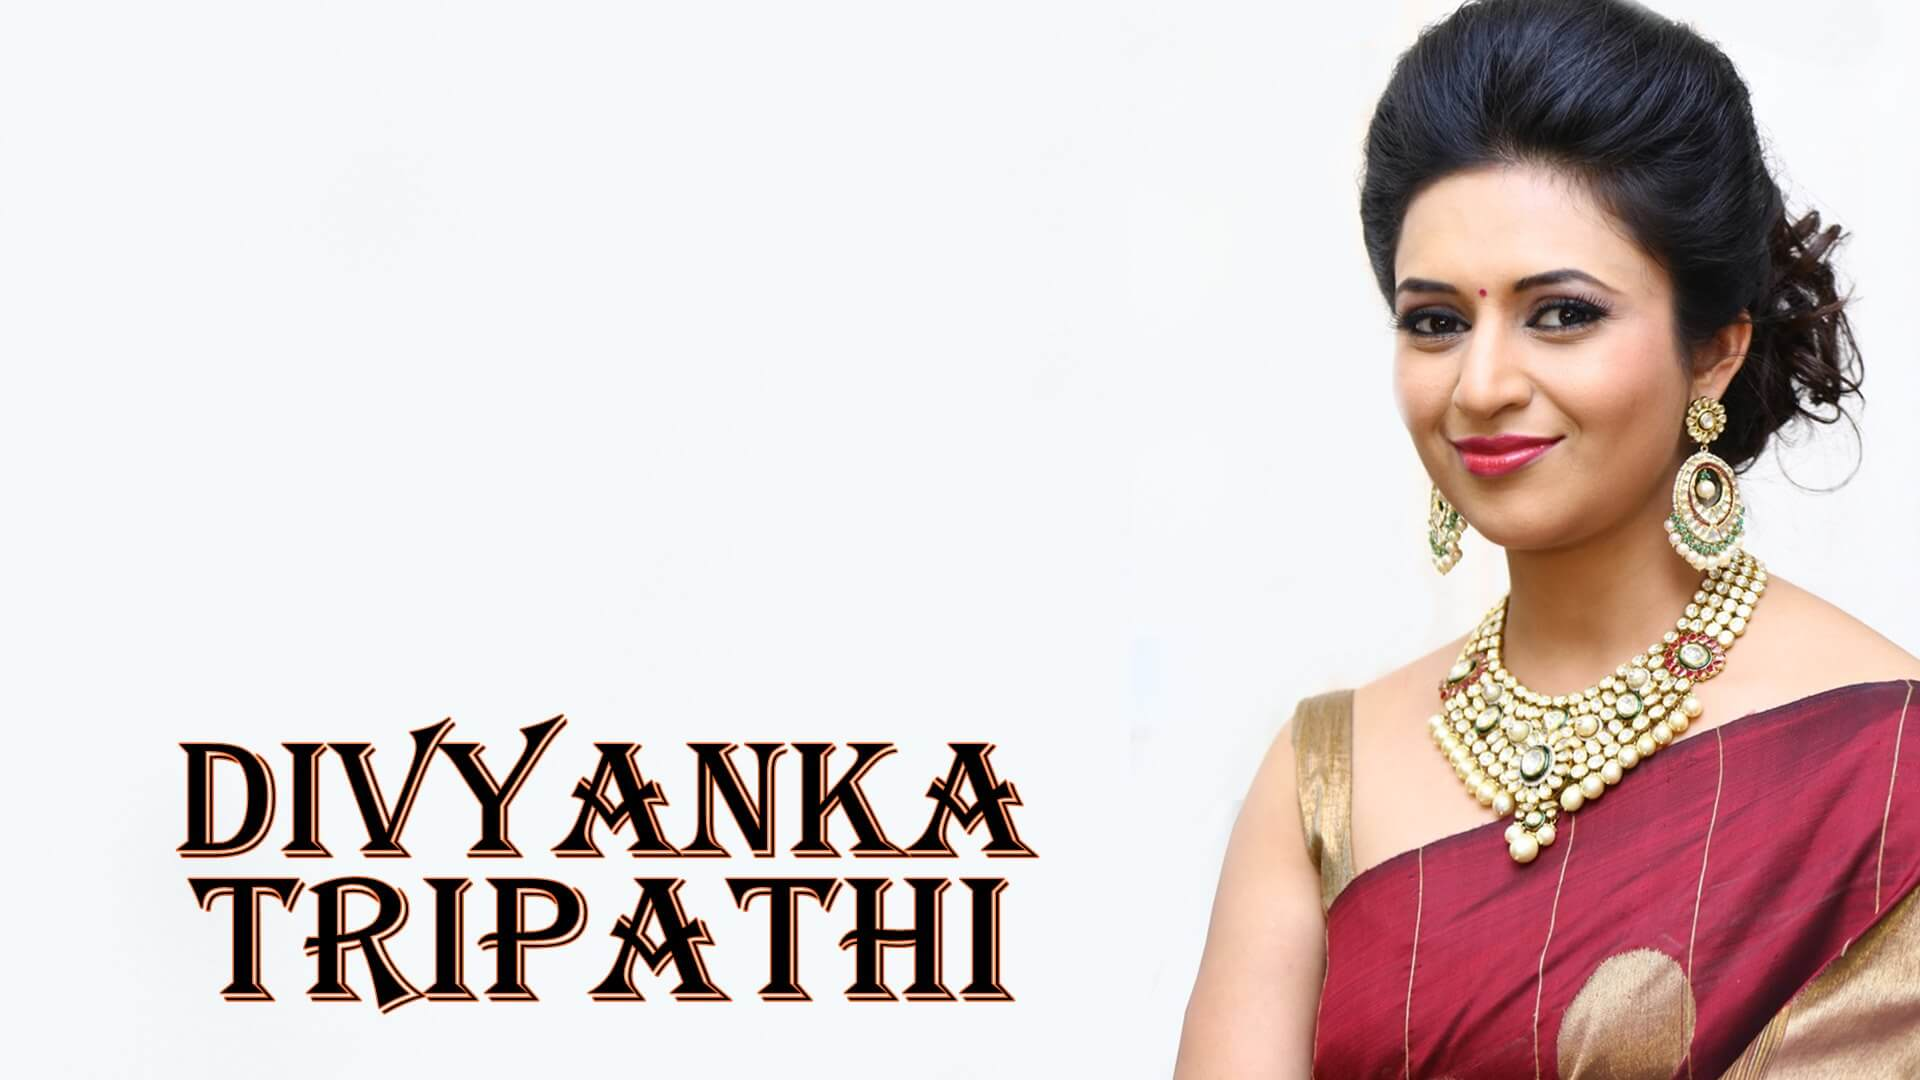 How to Meet Divyanka Tripathi Personally